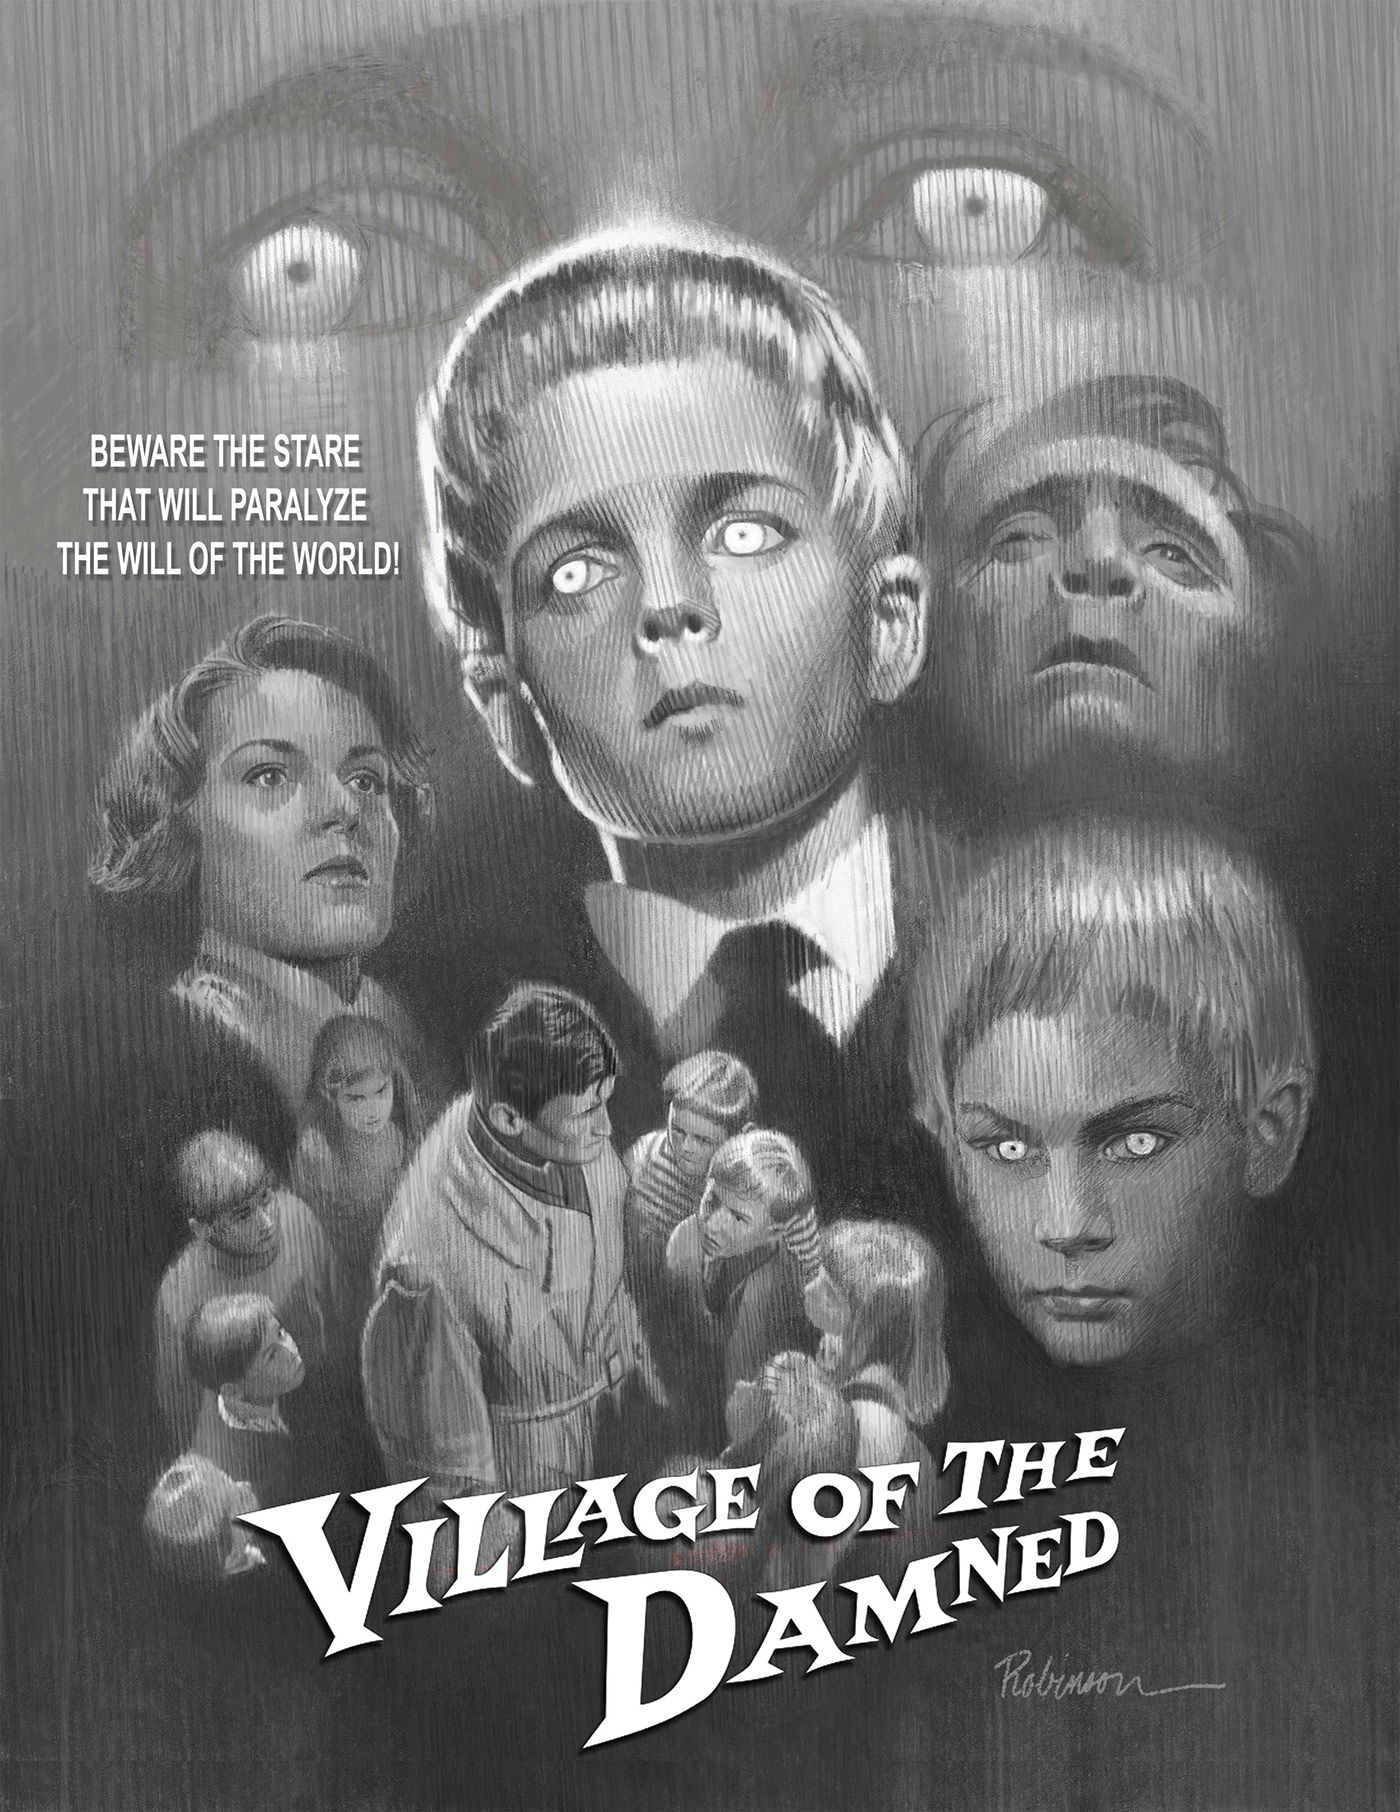 Village of the damned horror movie poster  2